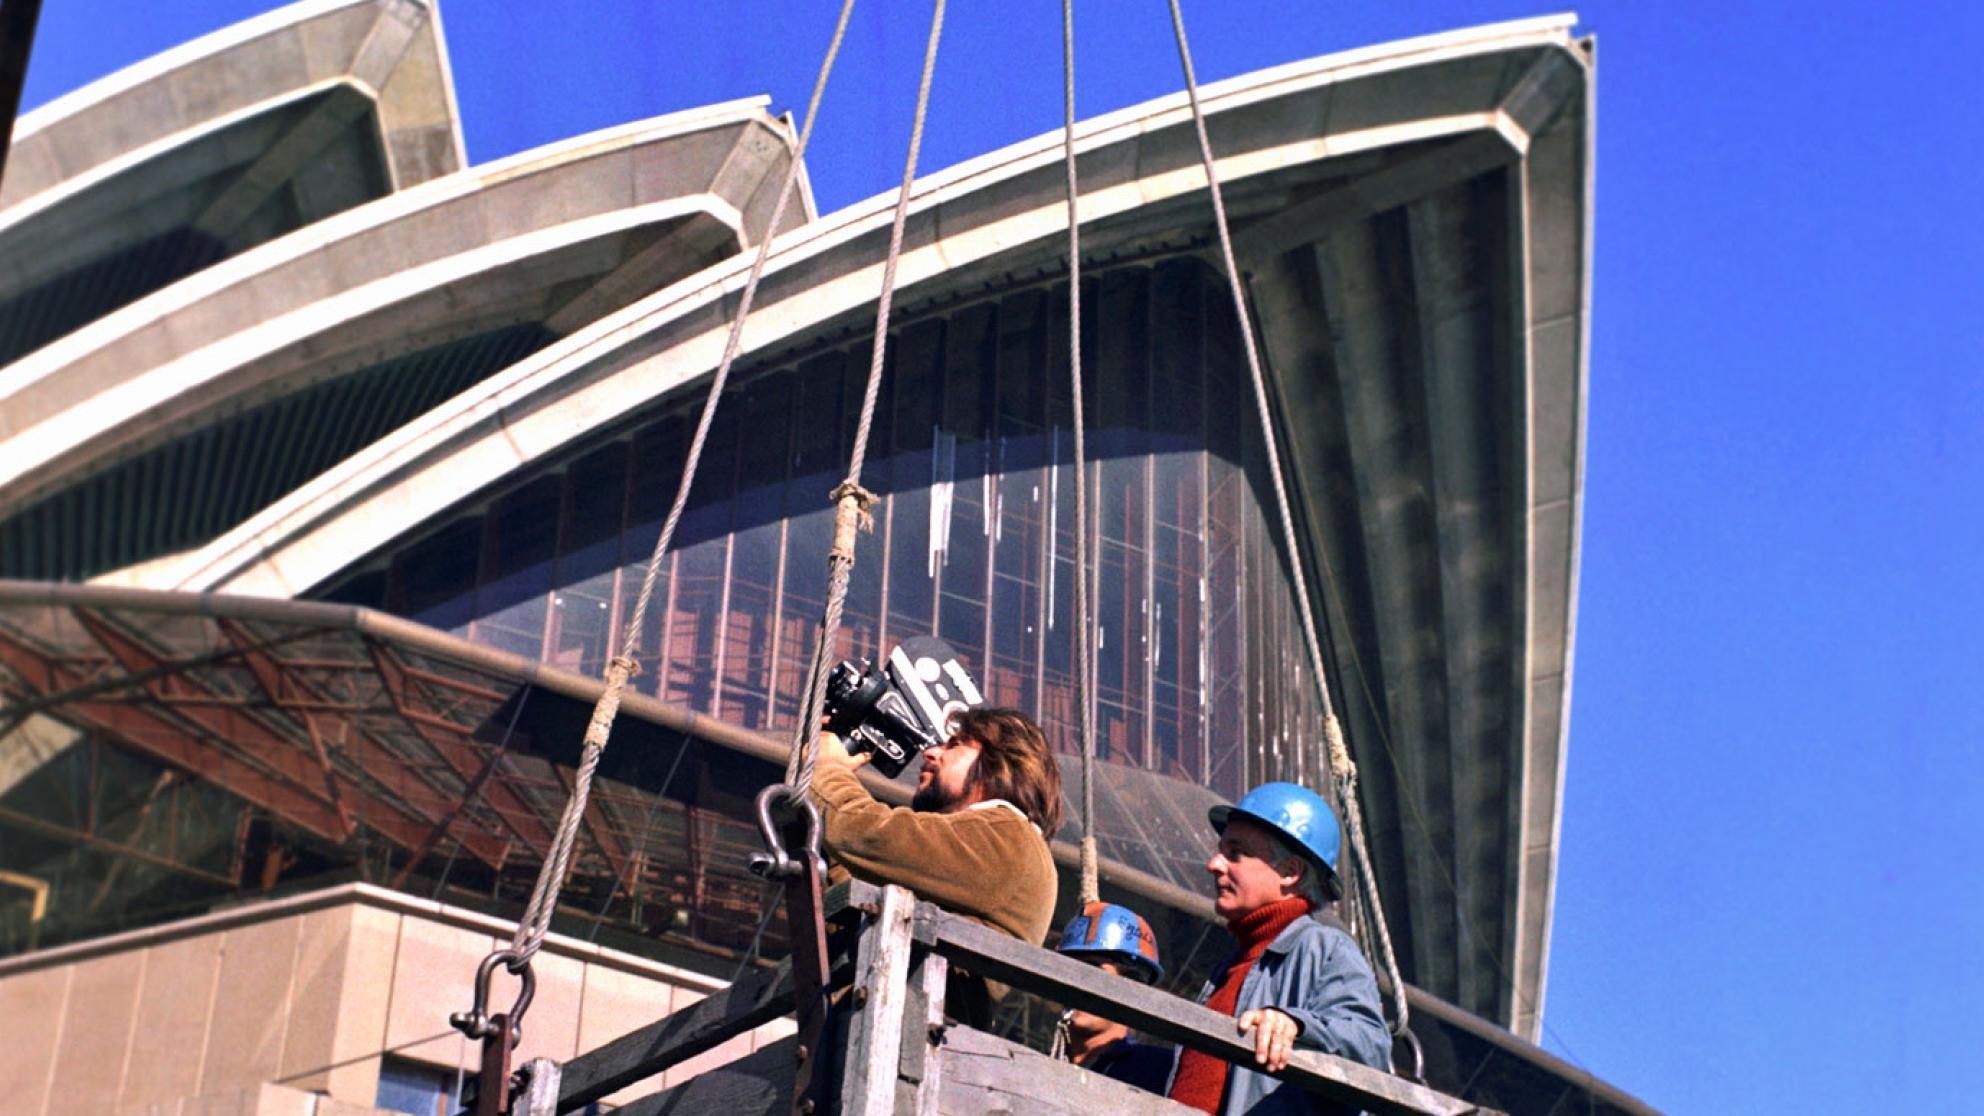 The sails of the Opera House tower above a camera operator and a man in a hardhat. They are standing in a wooden box which is hoisted to a crane.